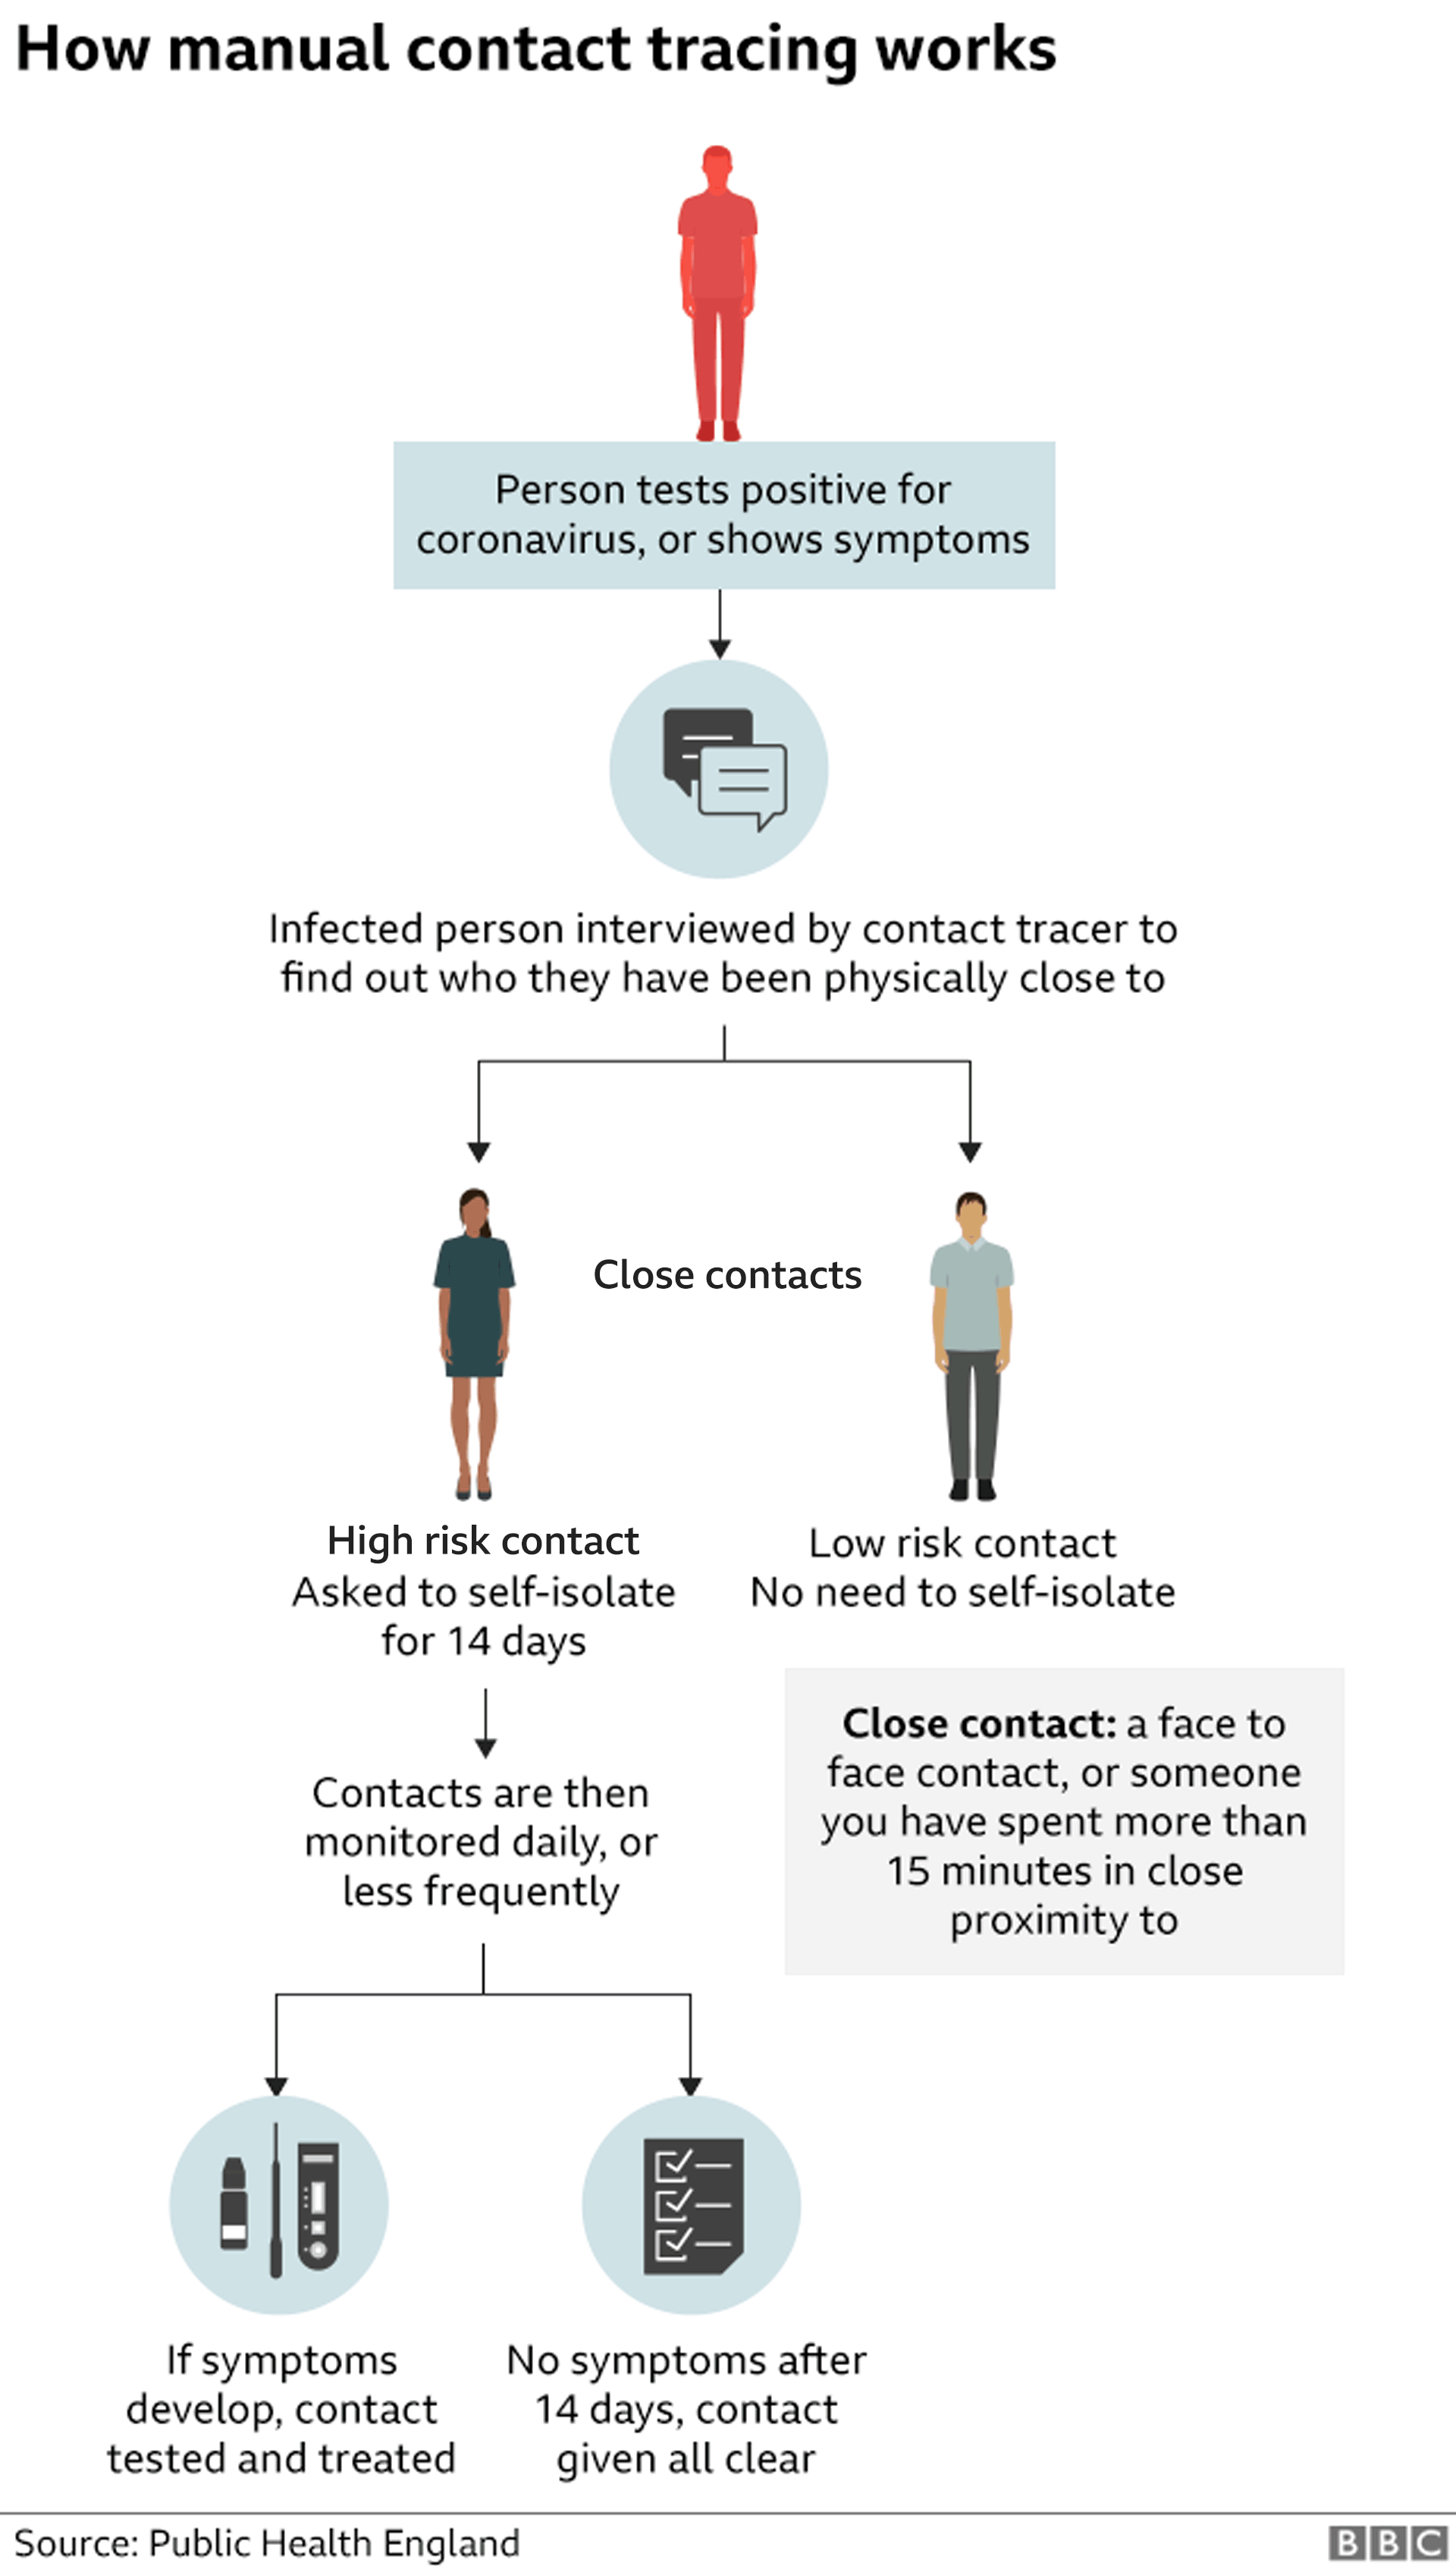 Graphic: How manual contact tracing works